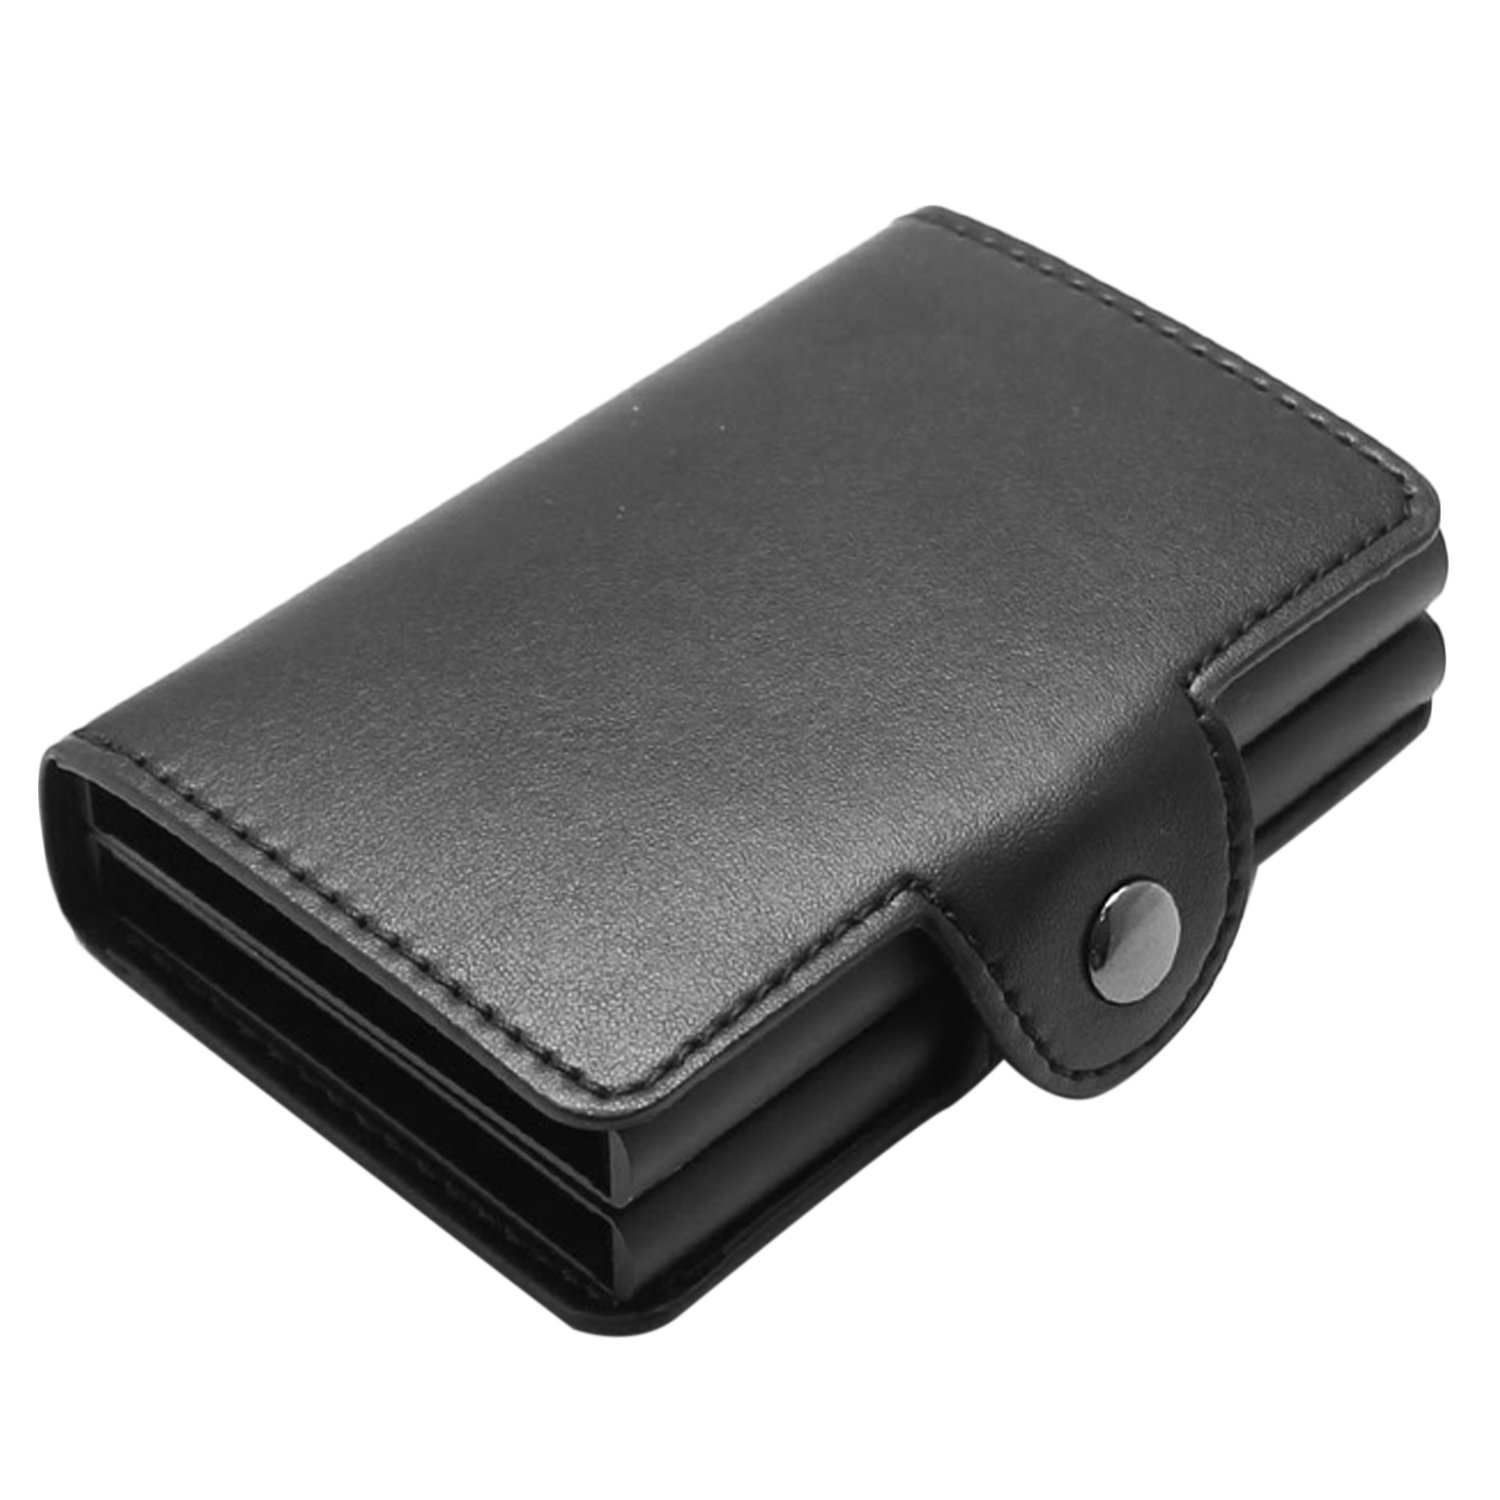 Credit Card Wallet, Elisona Automatic Pop up RFID Blocking Anti-Theft Genuine Leather Card Wallets Holder Case for Men Women Business Credit ID Gift Card Elisona S